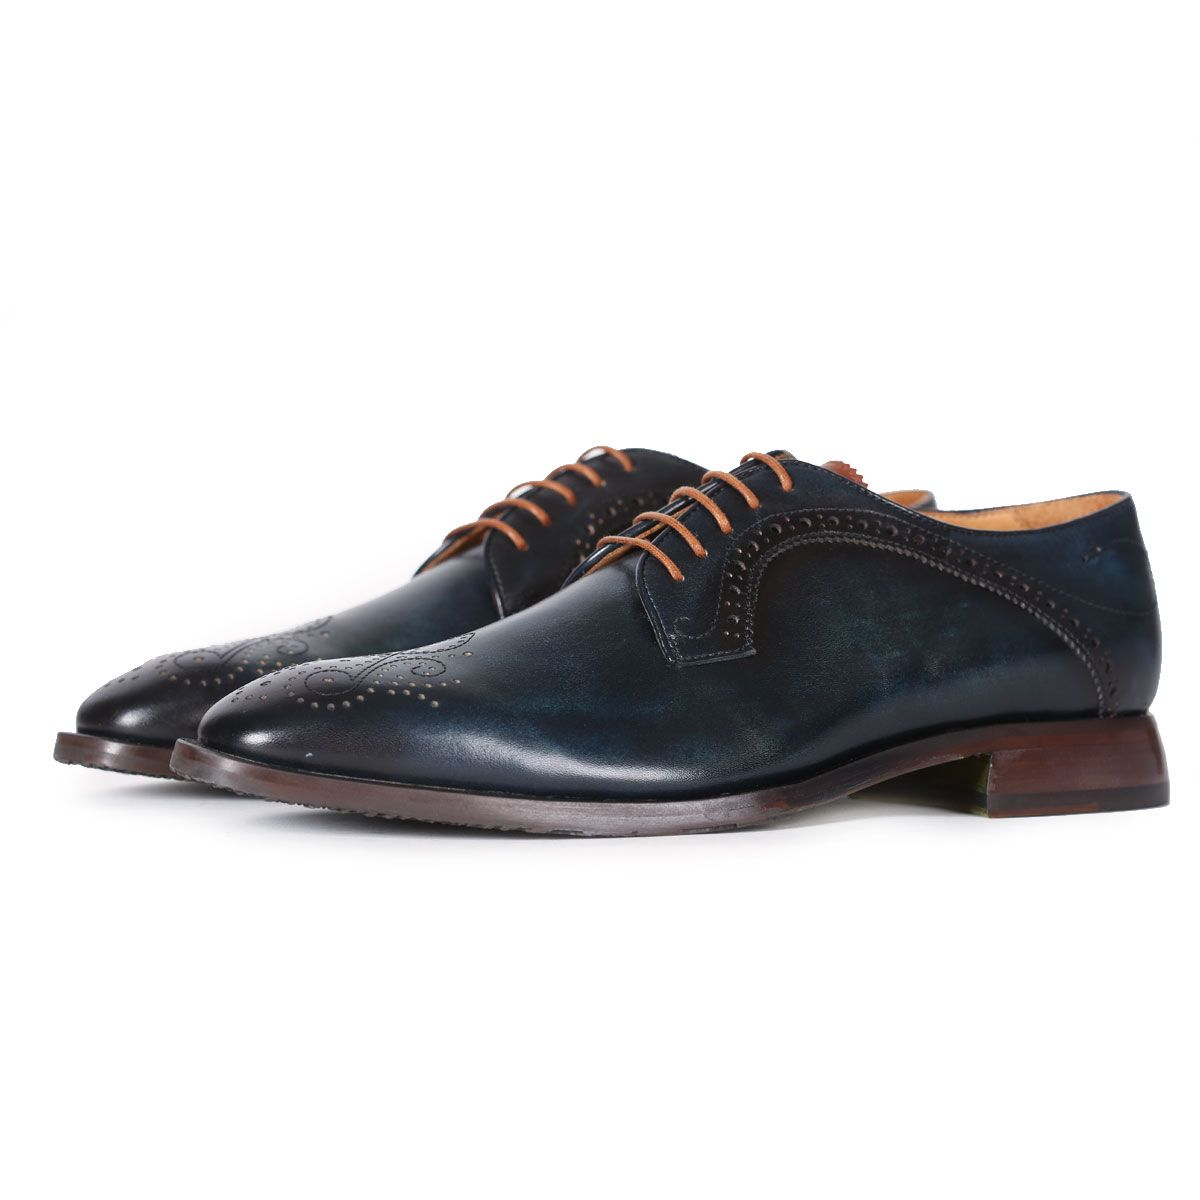 Oliver Sweeney Bonorva Navy - Antiqued Leather Derby Brogue